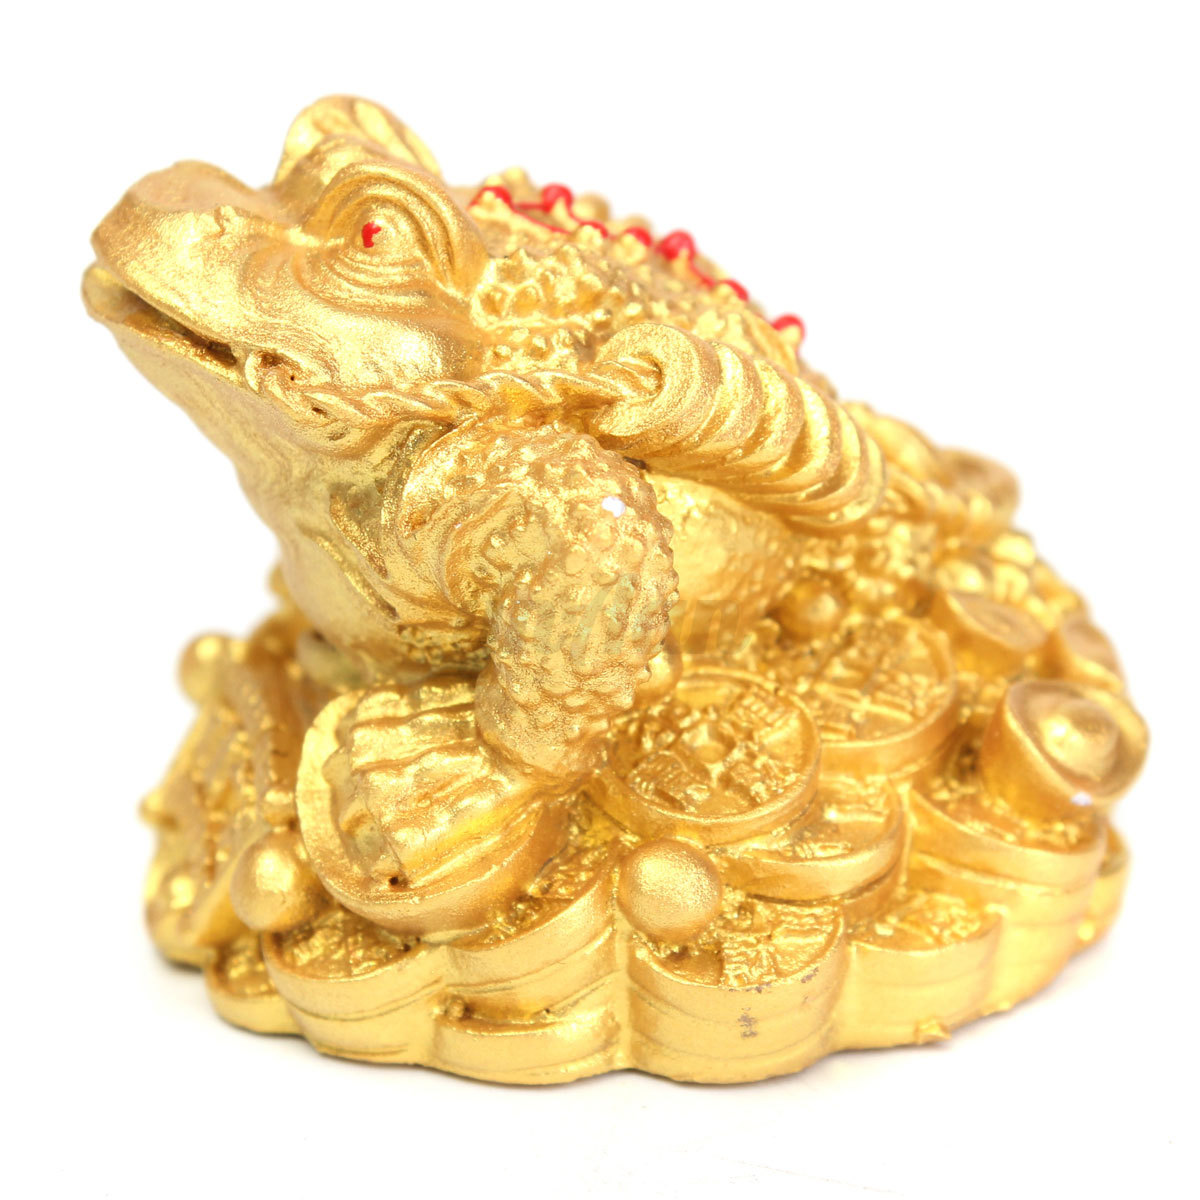 feng shui money 3 legs gilded frog toad ingot copper coin enhance fortune weath ebay. Black Bedroom Furniture Sets. Home Design Ideas